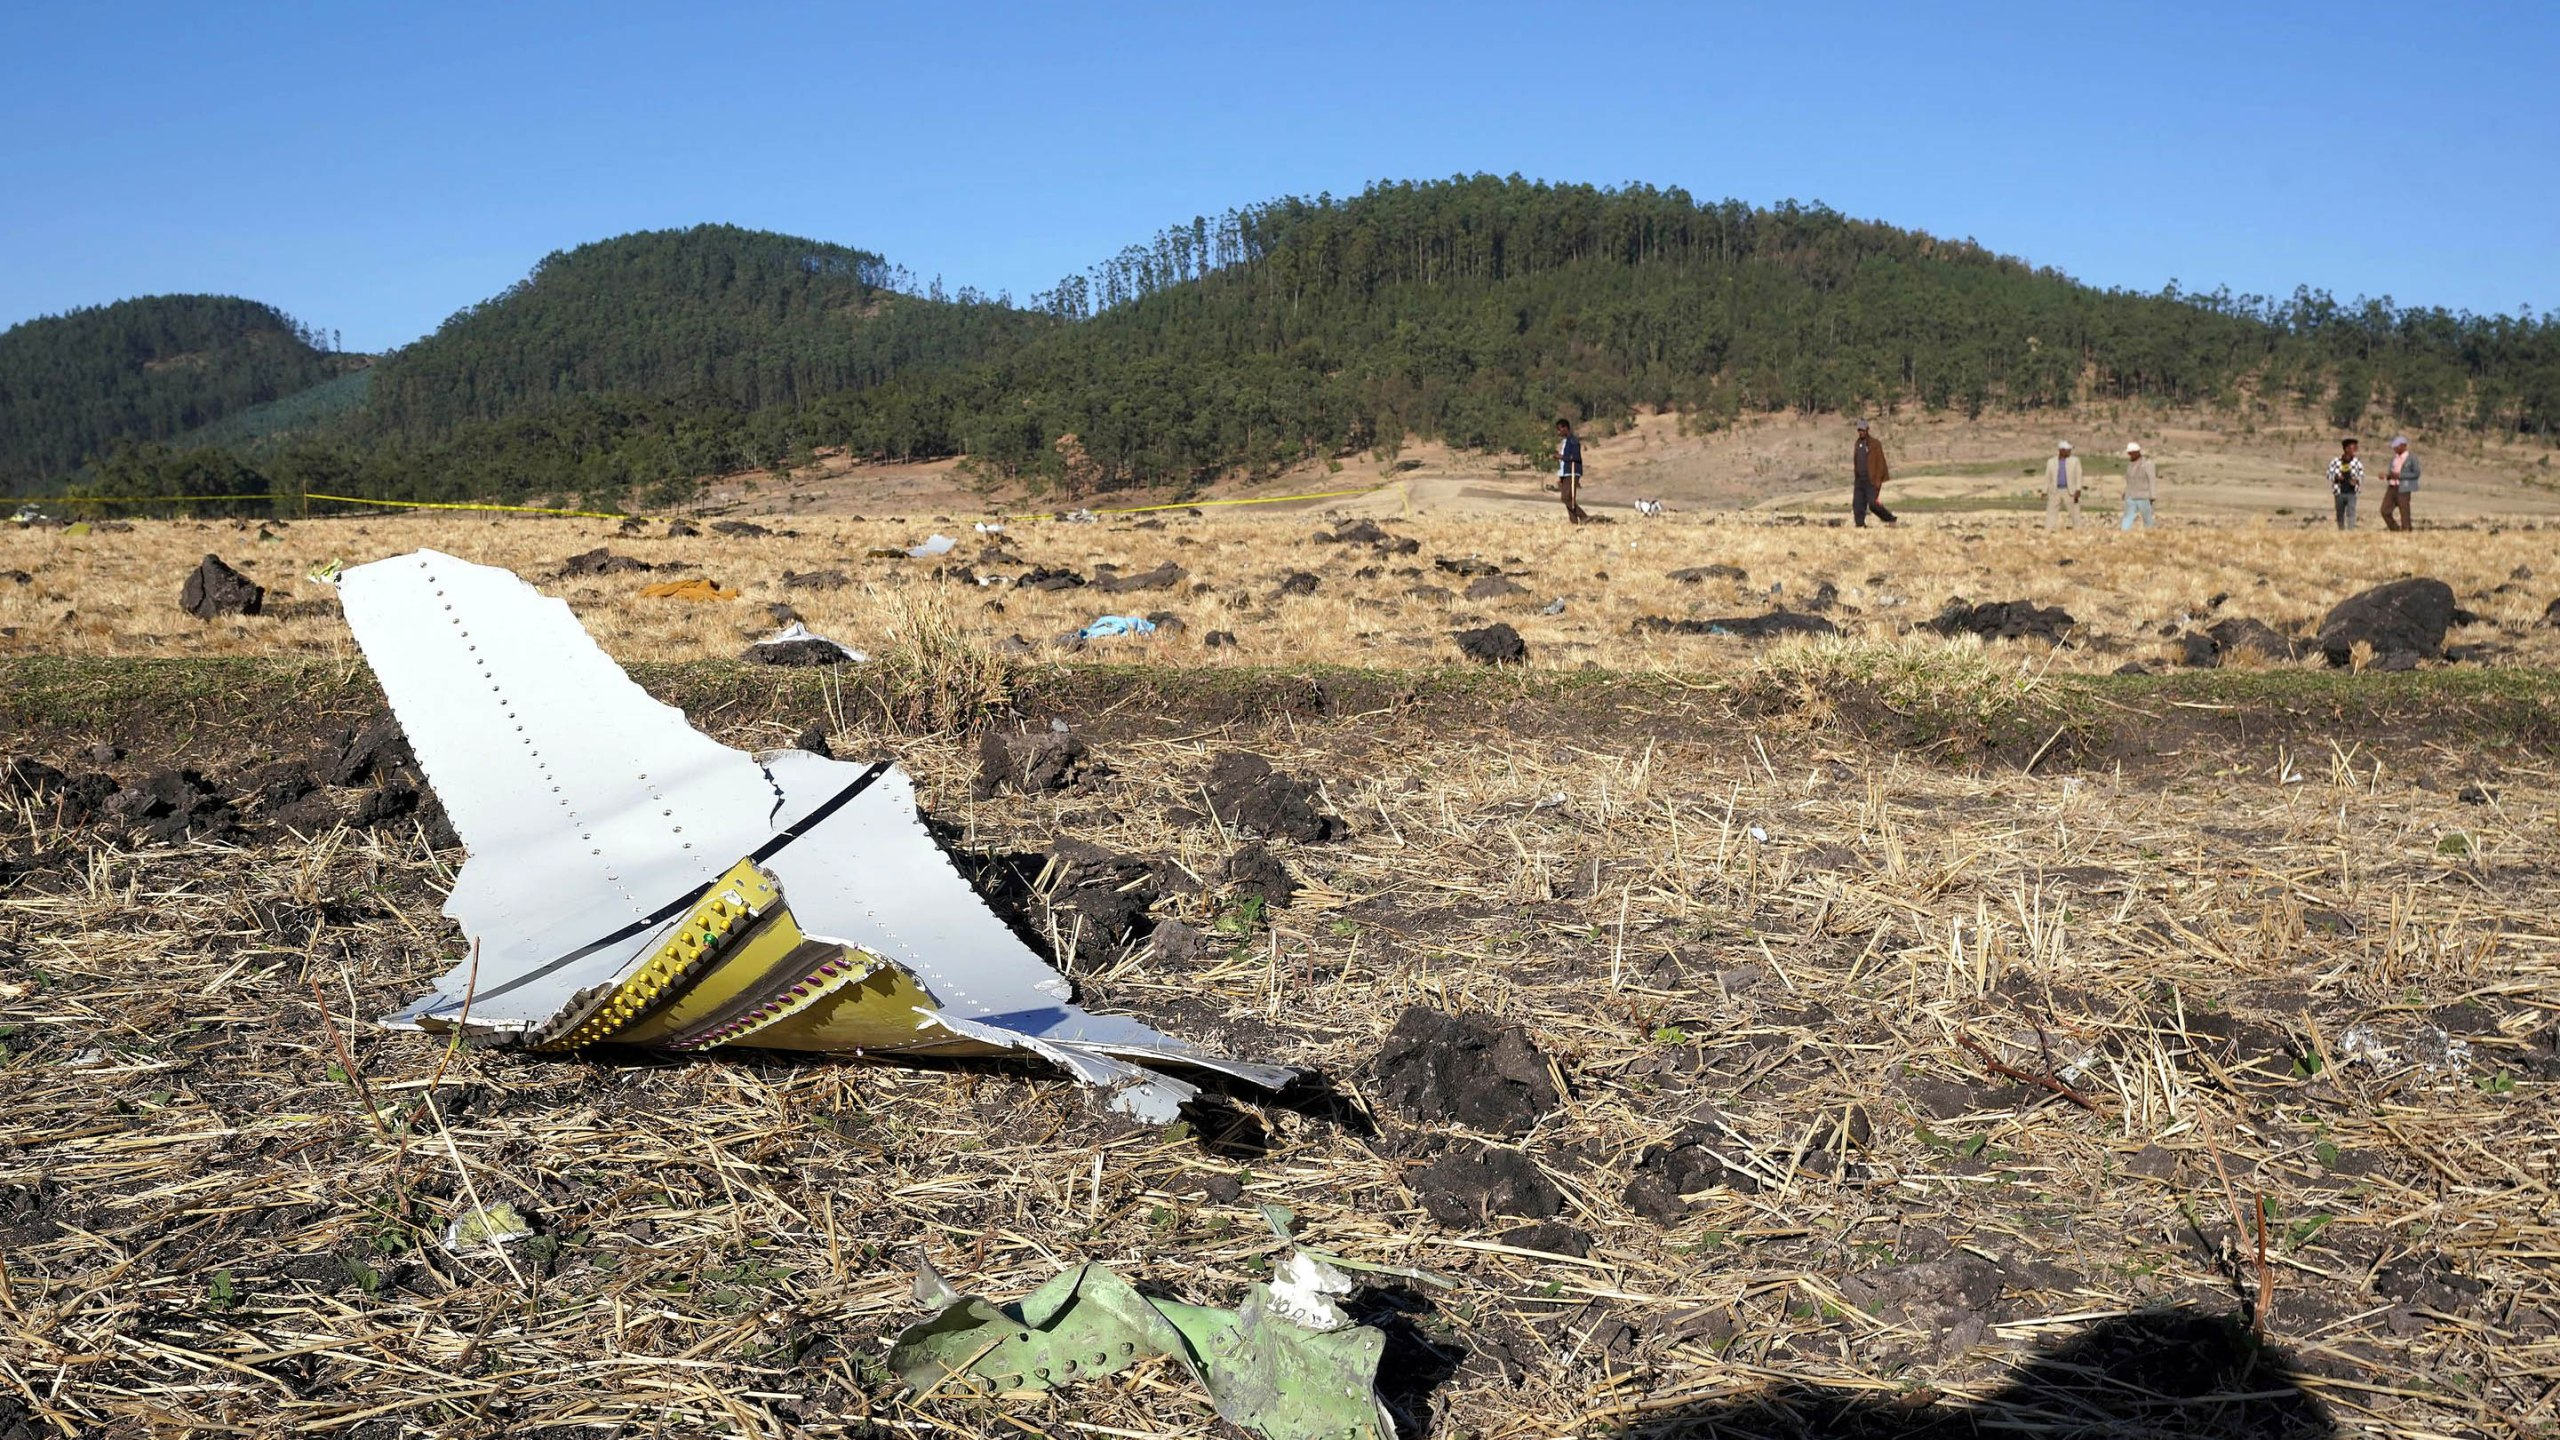 A piece of the fuselage of ET Flight 302 can be seen in the foreground as local residents collect debris at the scene where Ethiopian Airlines Flight 302 crashed in a wheat field on March 10, 2019, in Addis Ababa, Ethiopia. (Credit: Jemal Countess/Getty Images)